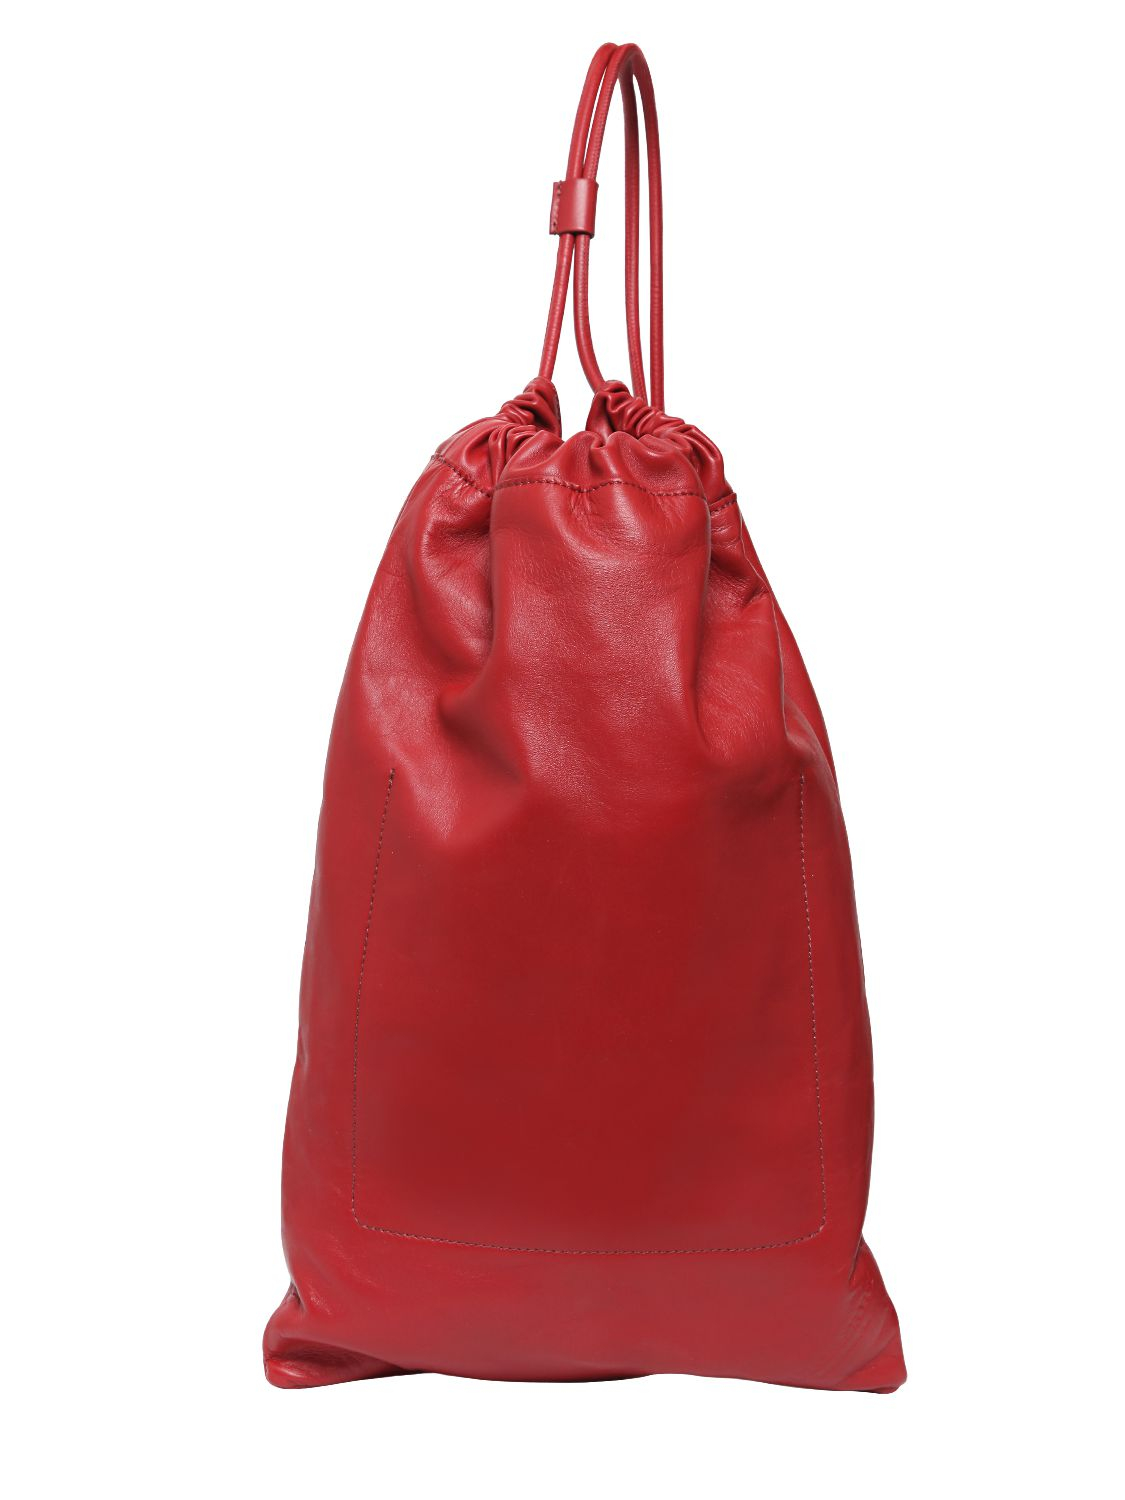 Burberry Prorsum Leather Duffle Bag in Red for Men - Lyst